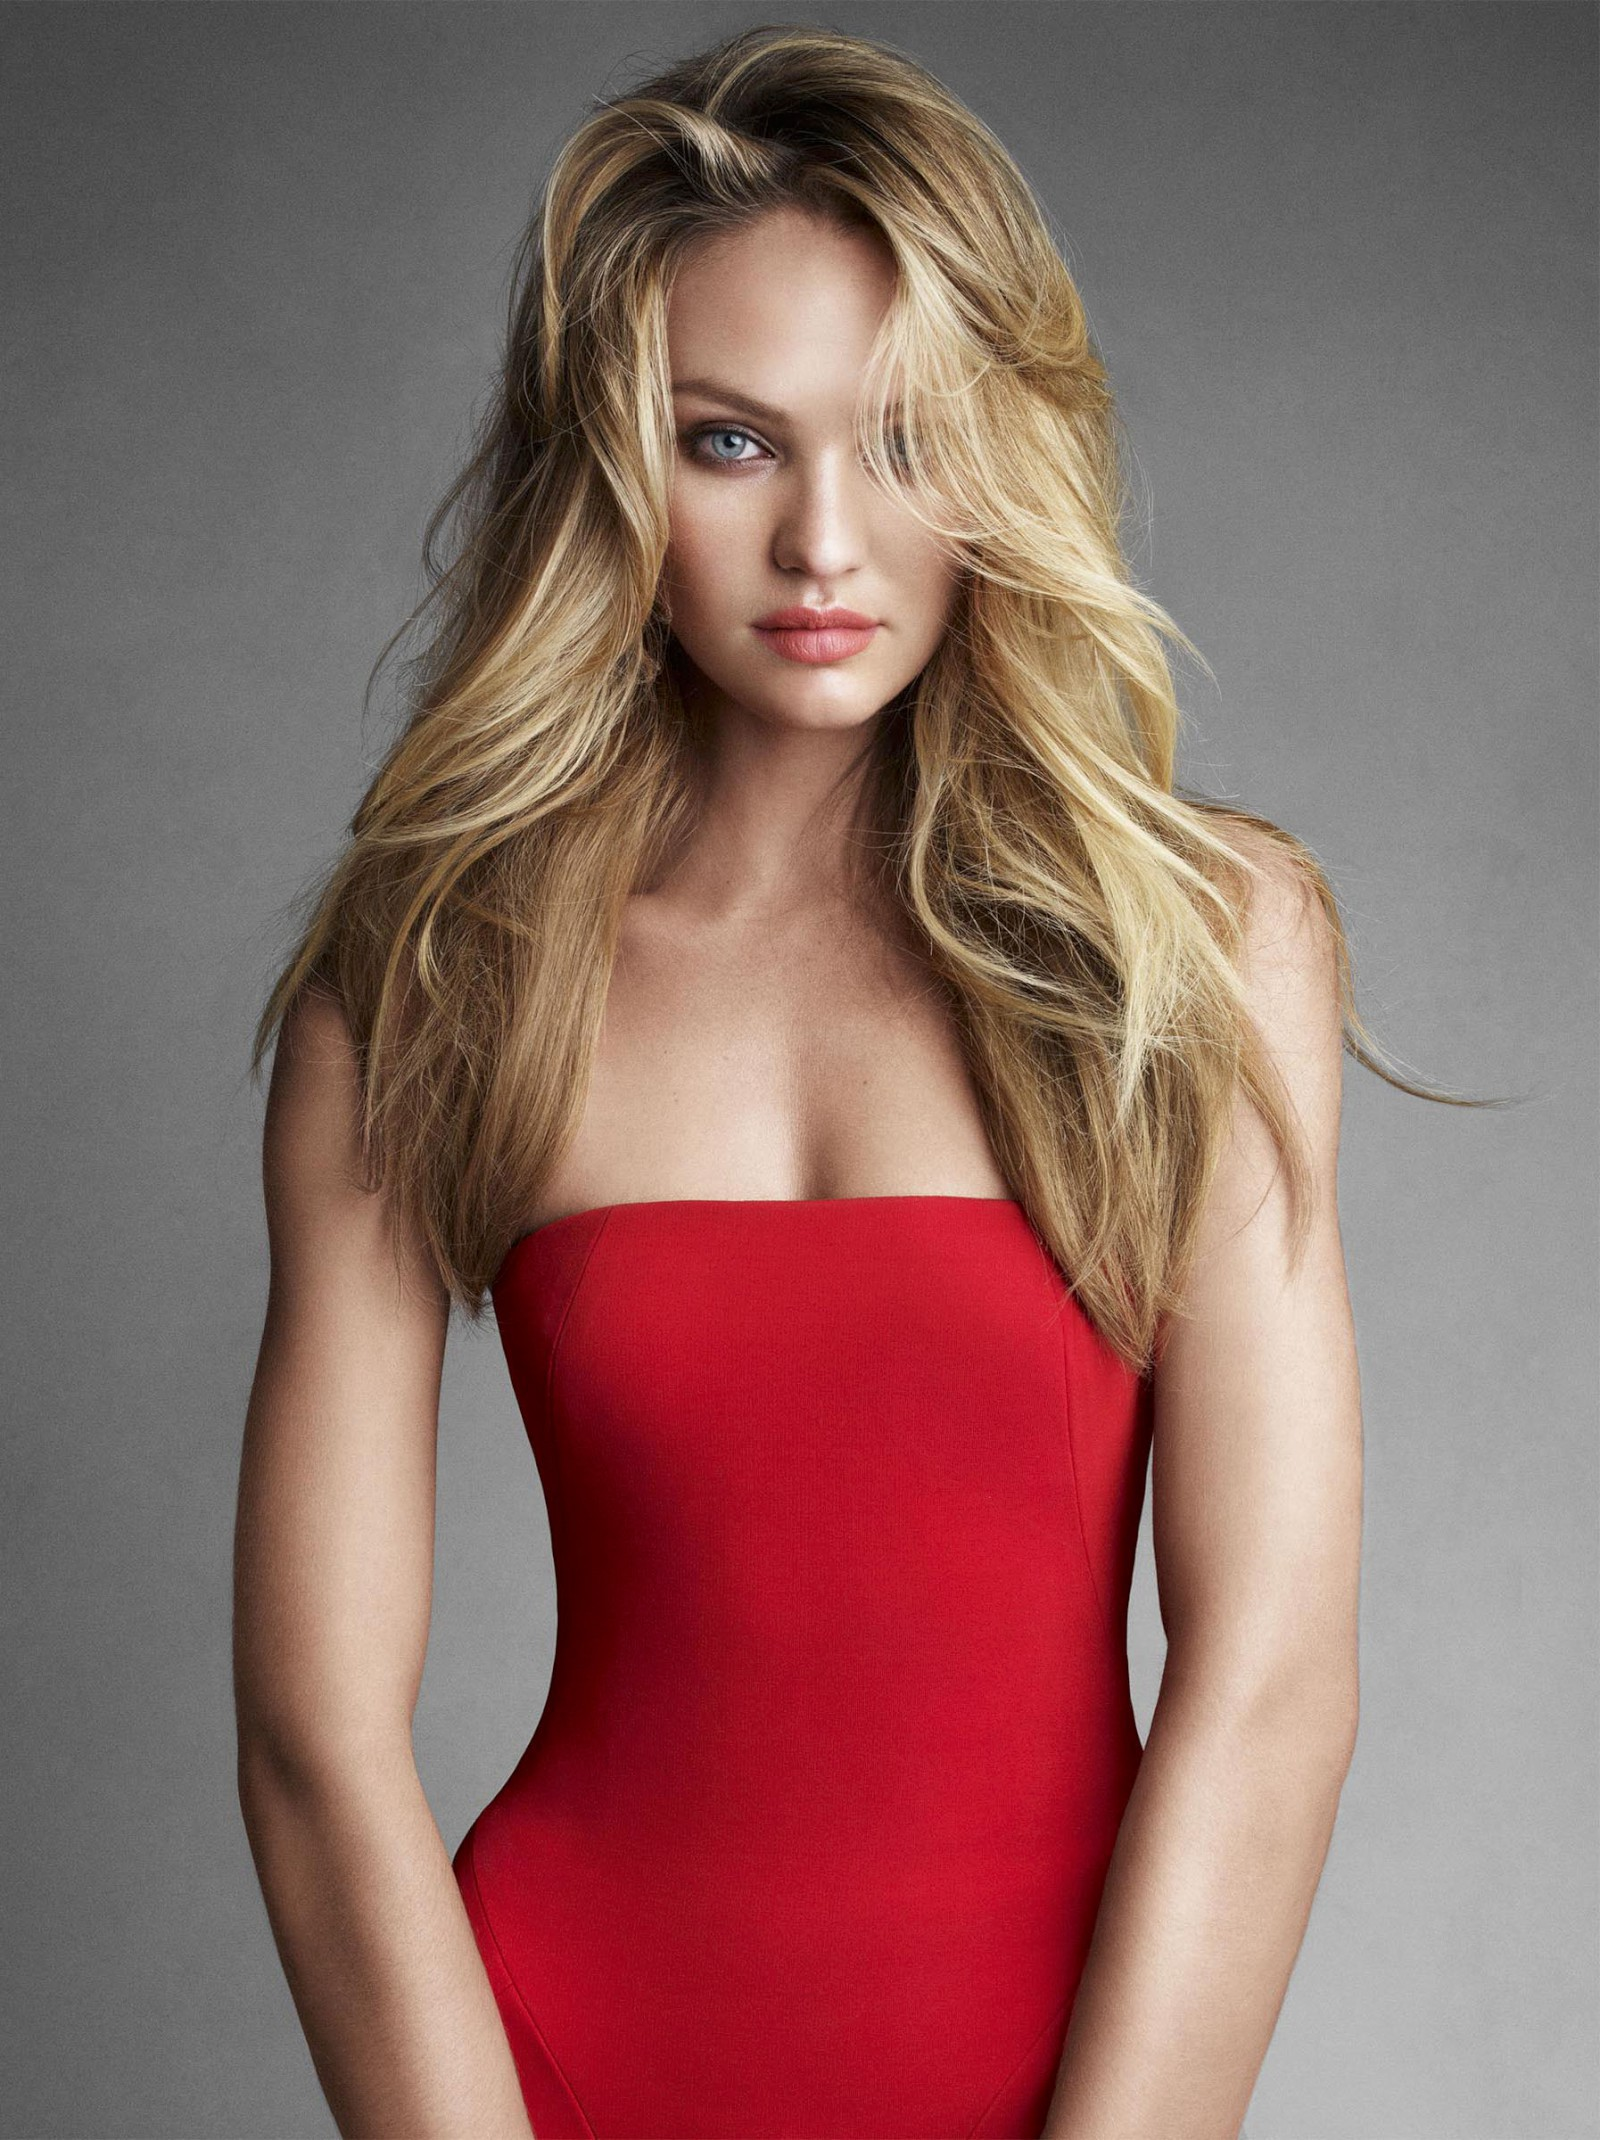 Candice Swanepoel – Vogue Magazine Photoshoot Wallpaper